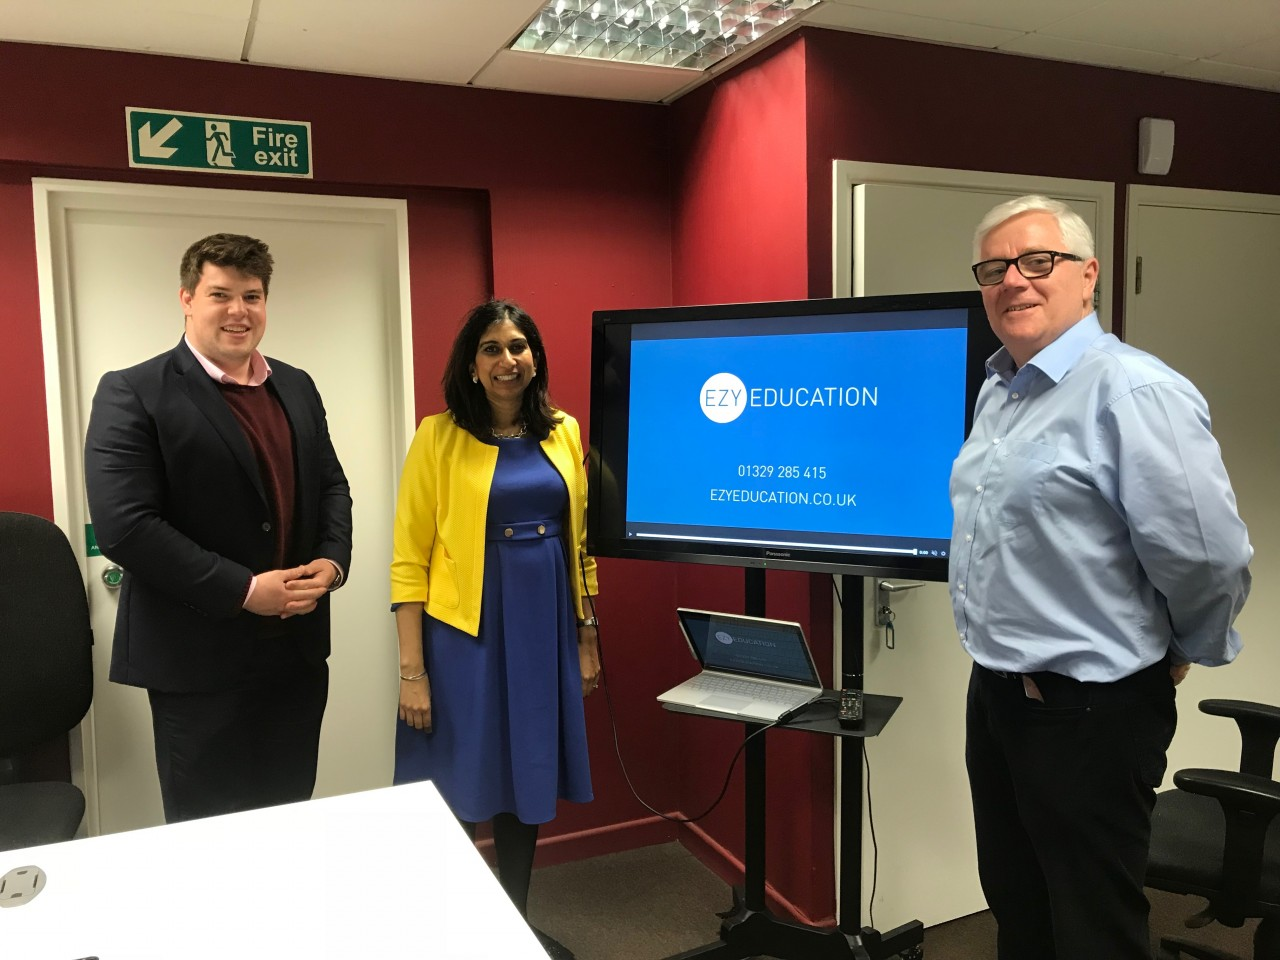 Visit by Suella Braverman MP